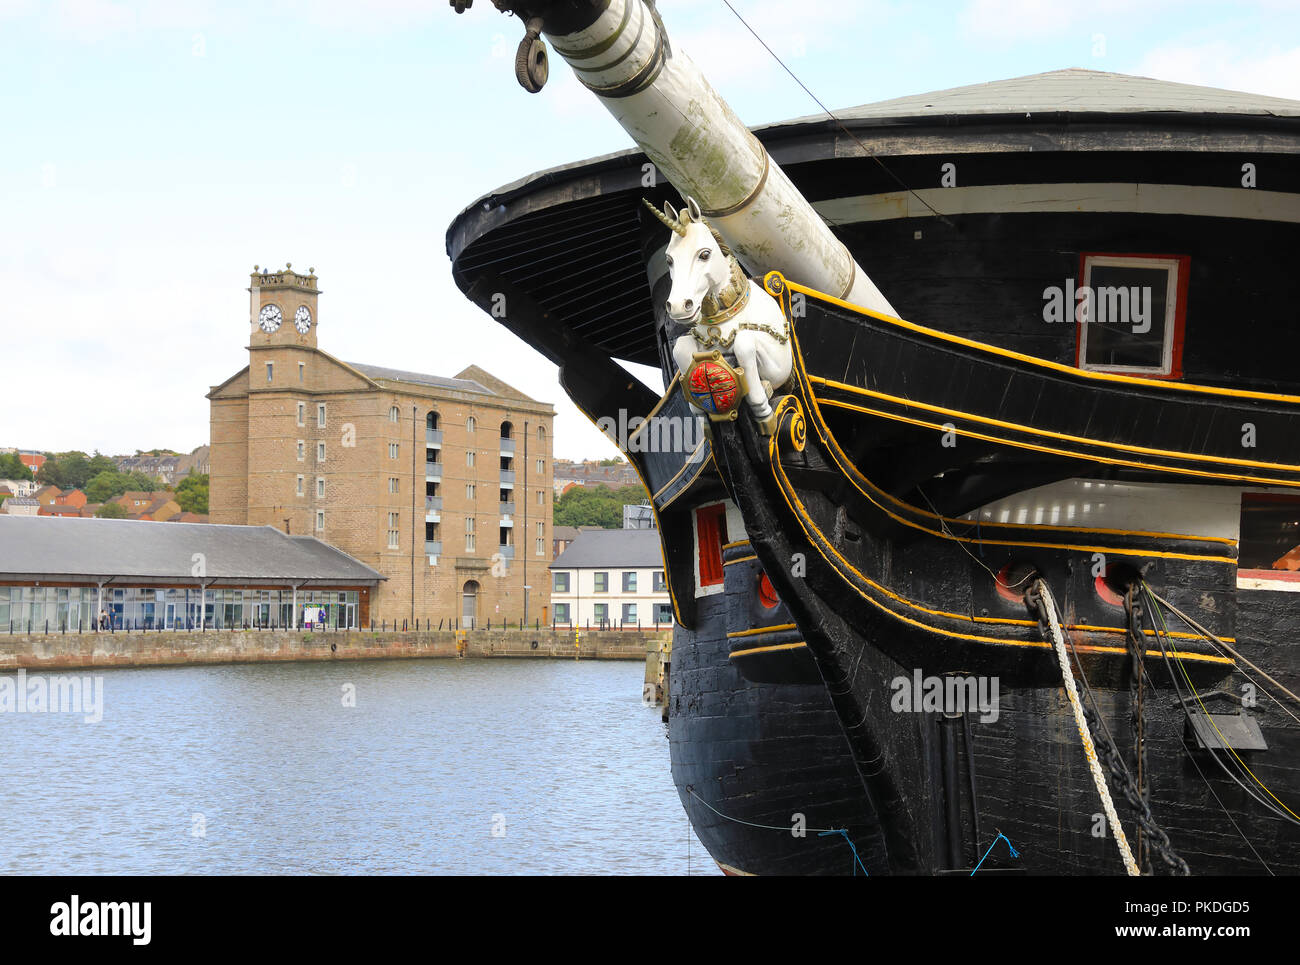 HMS Unicorn on Victoria Dock in the city of Dundee, used as a marina and part of the City Quay redevelopment, on Tayside, in Scotland, UK - Stock Image